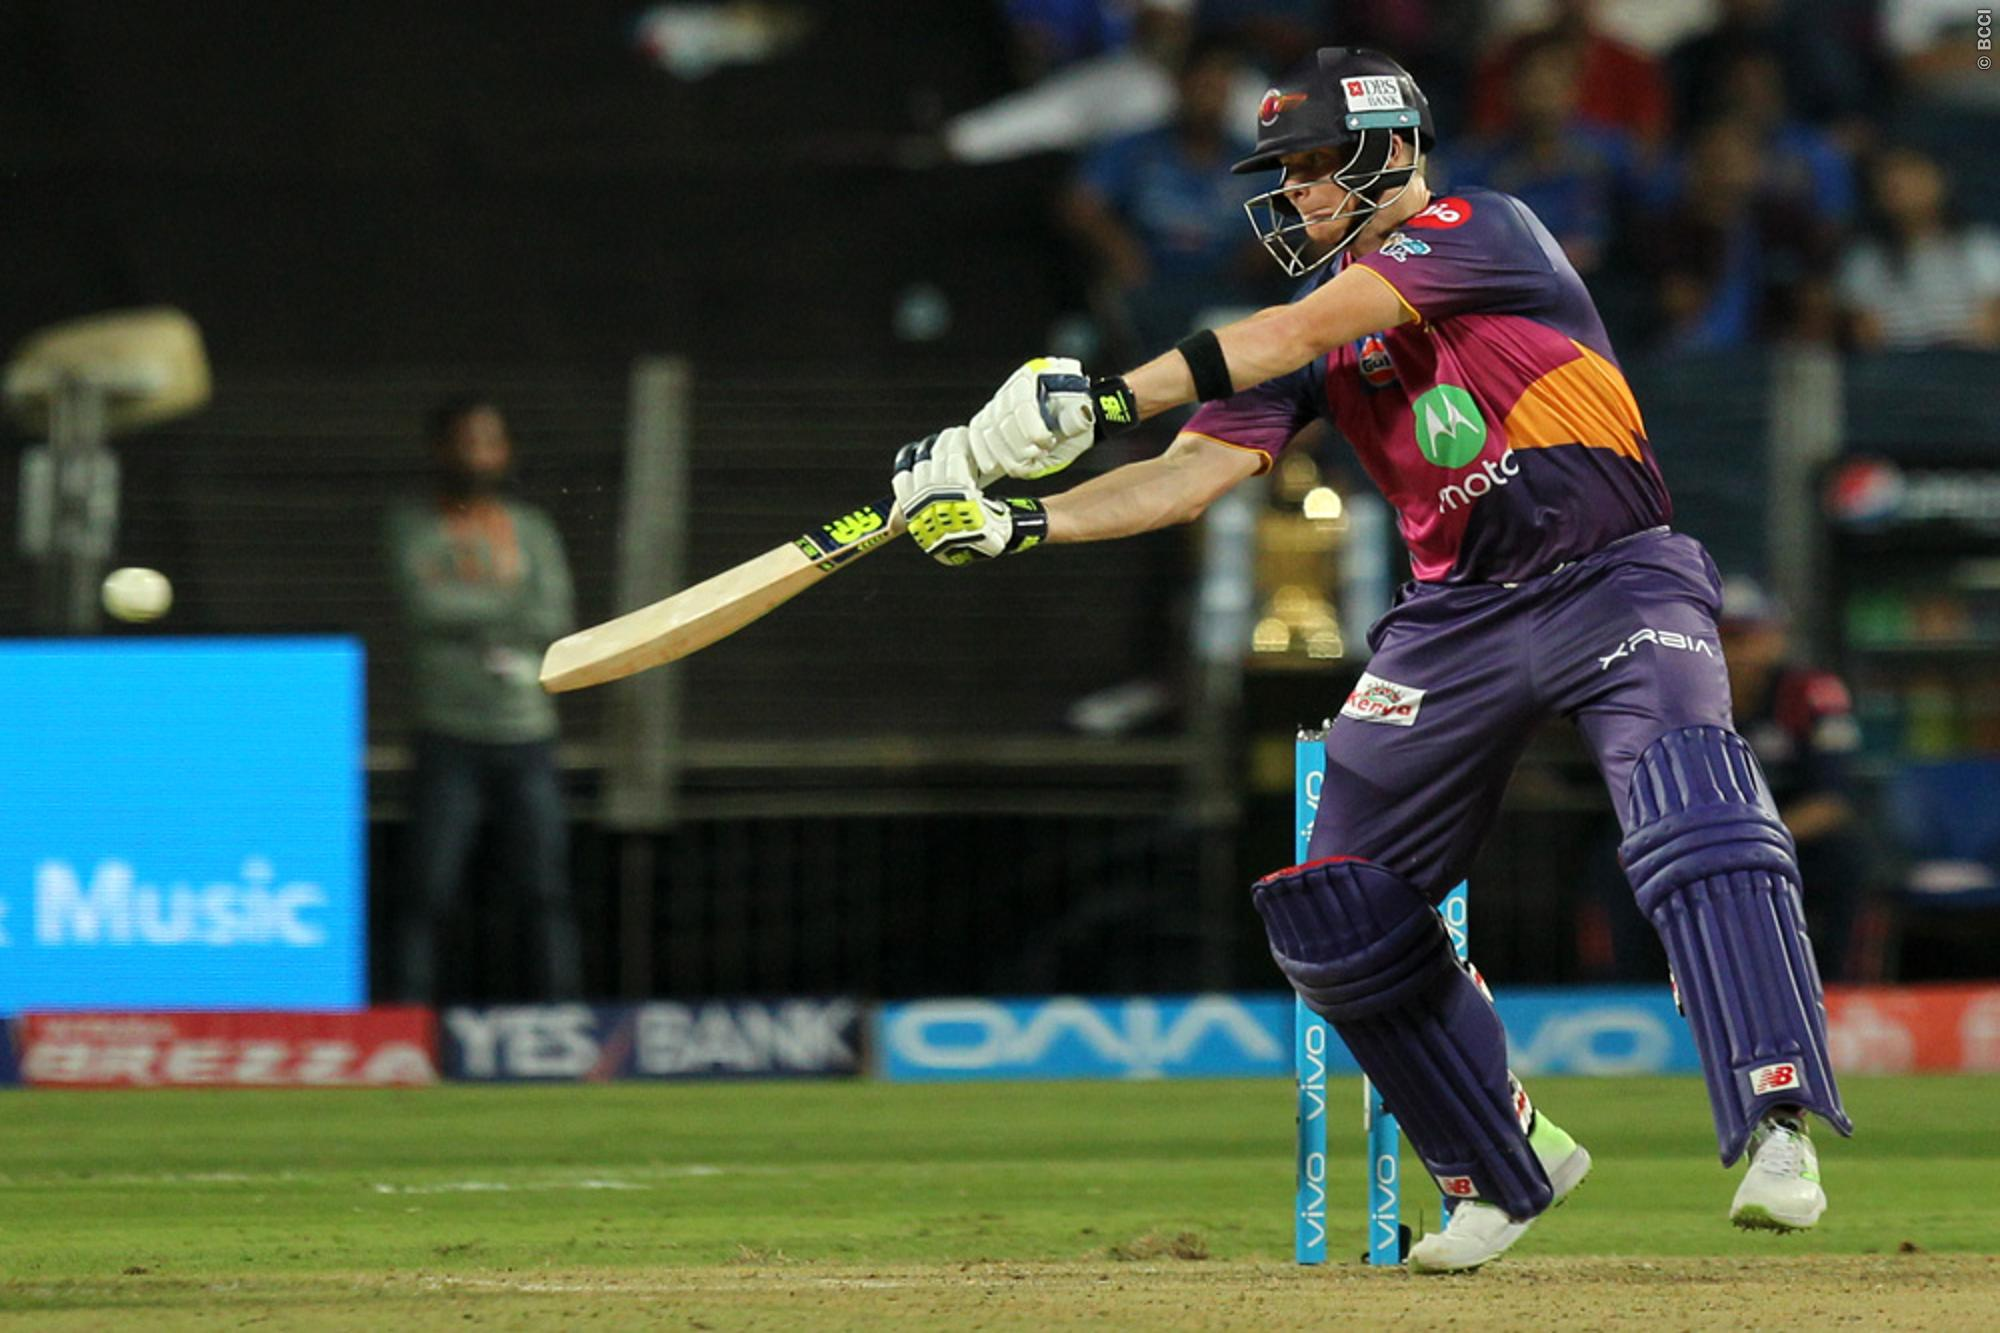 IPL 2017 Result: Rising Pune Supergiants Make Winning Start